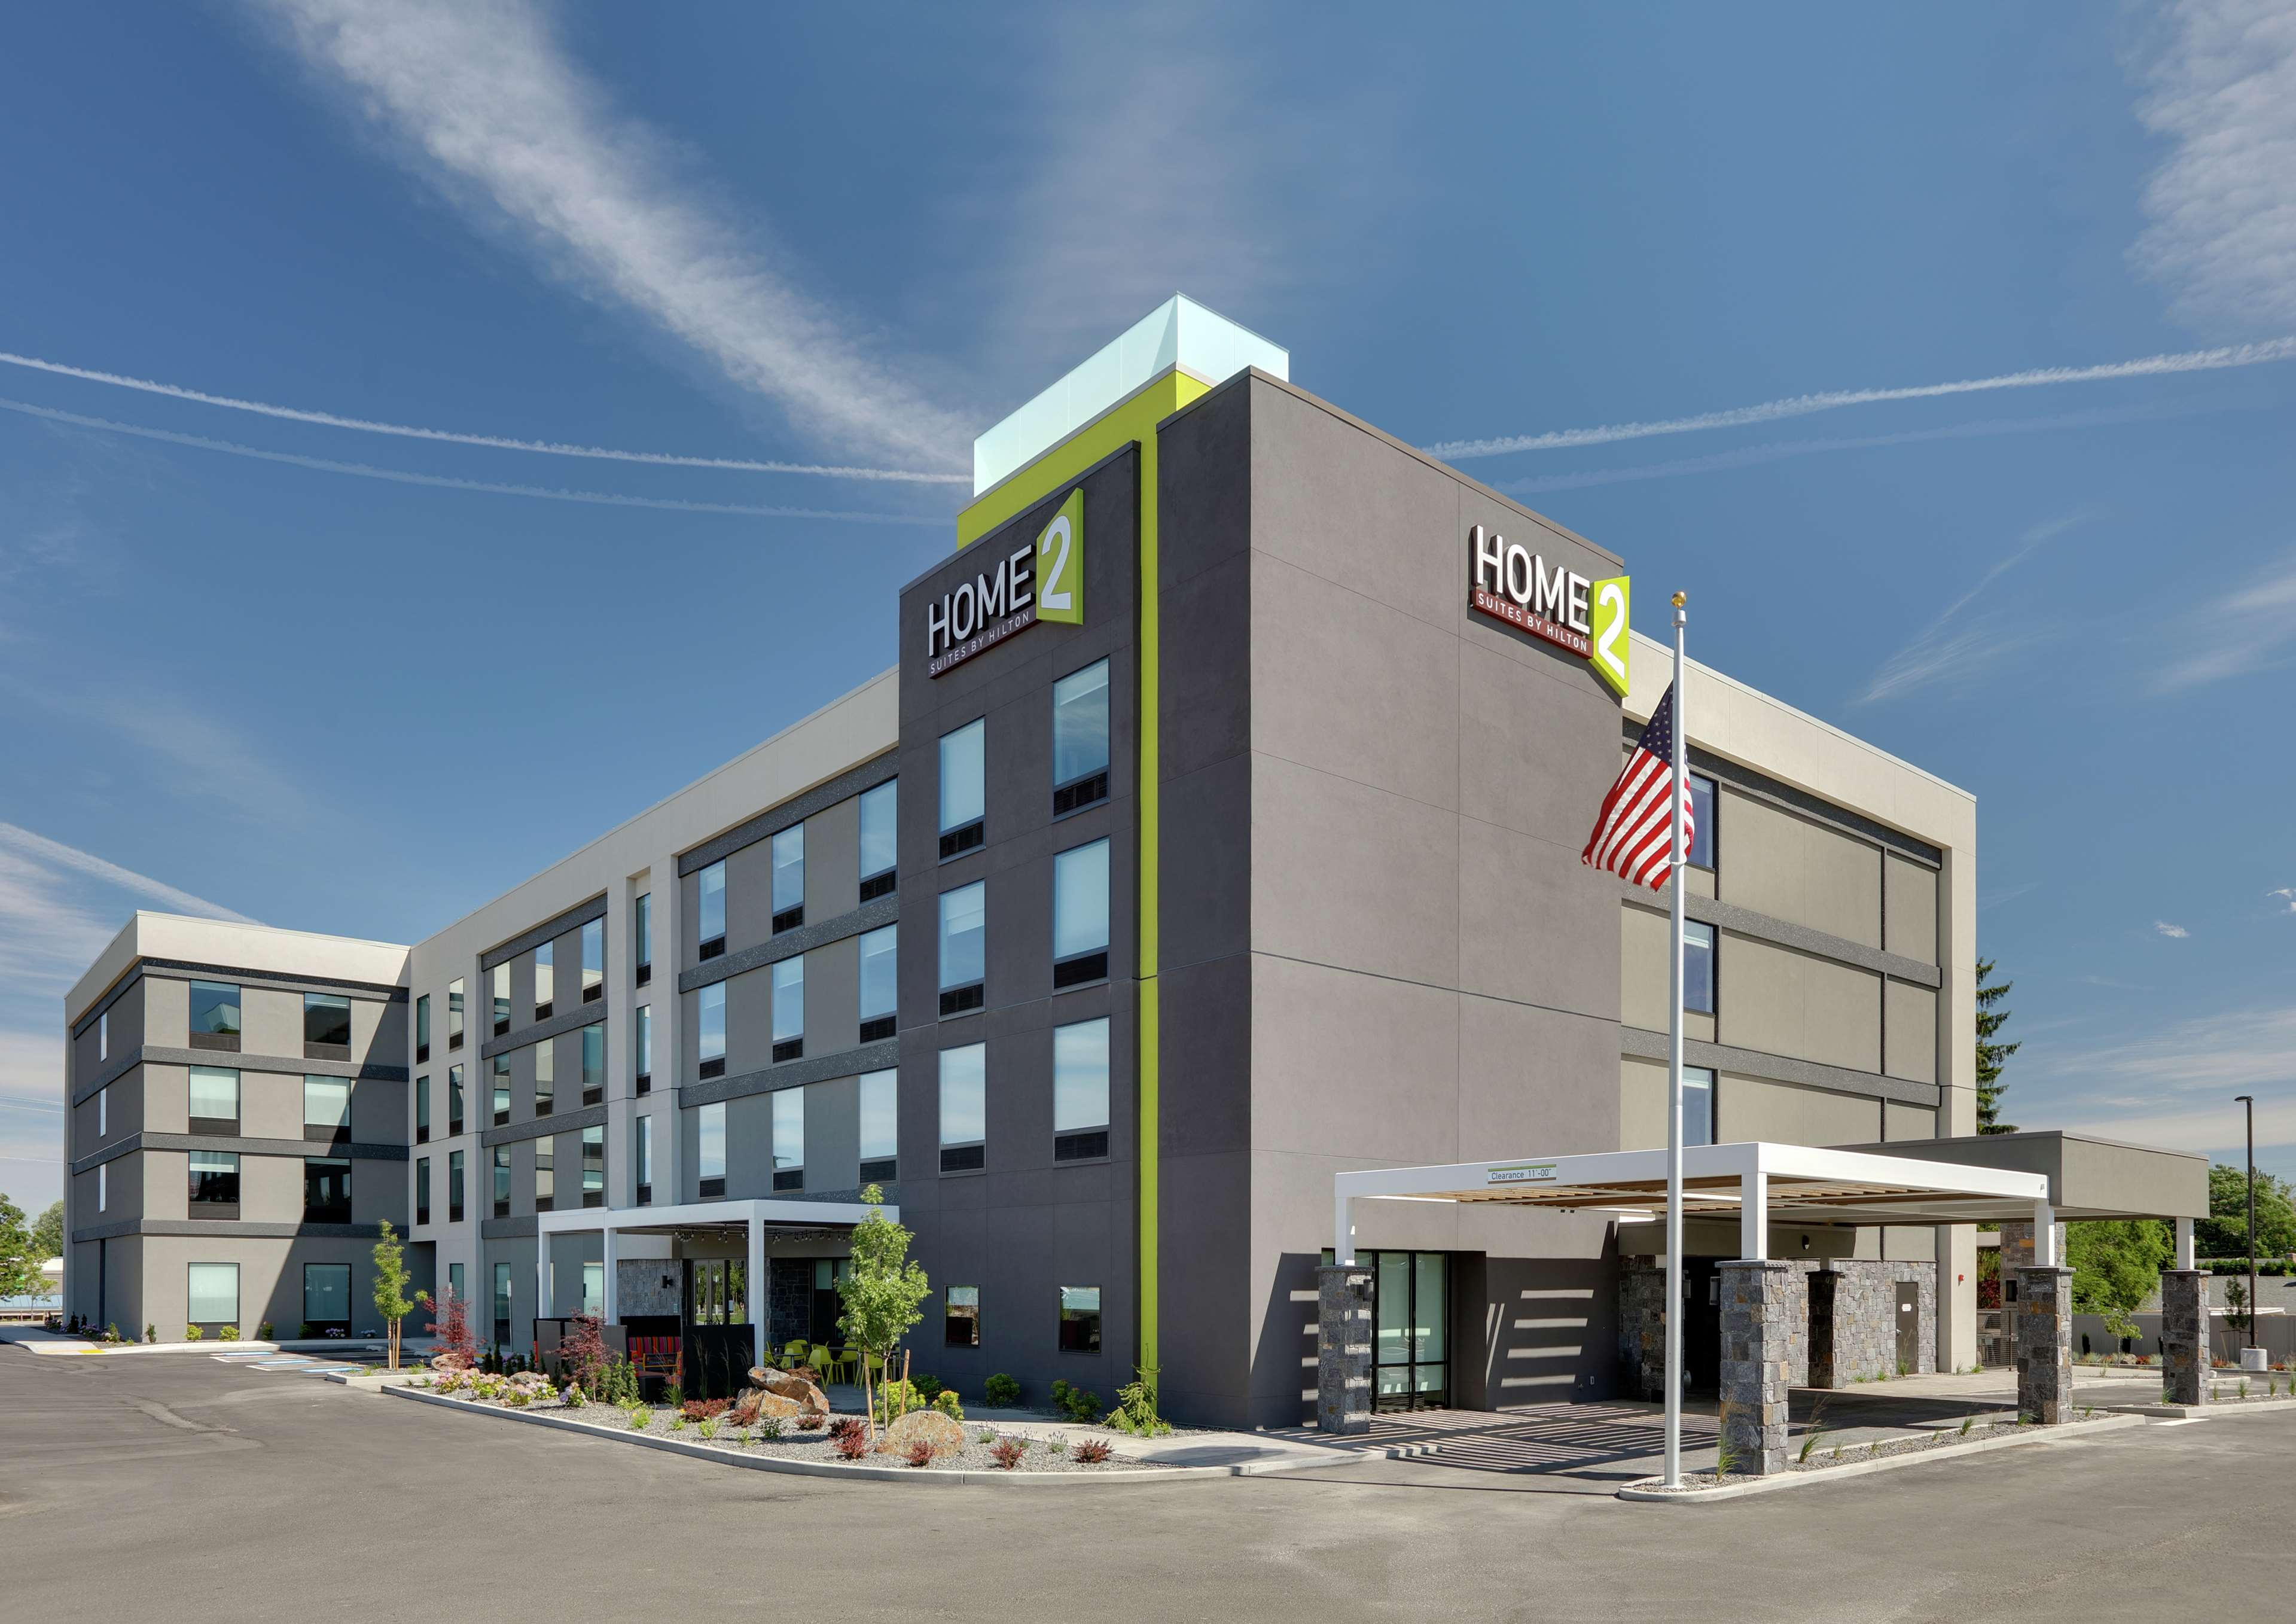 Home2 Suites by Hilton Yakima Airport